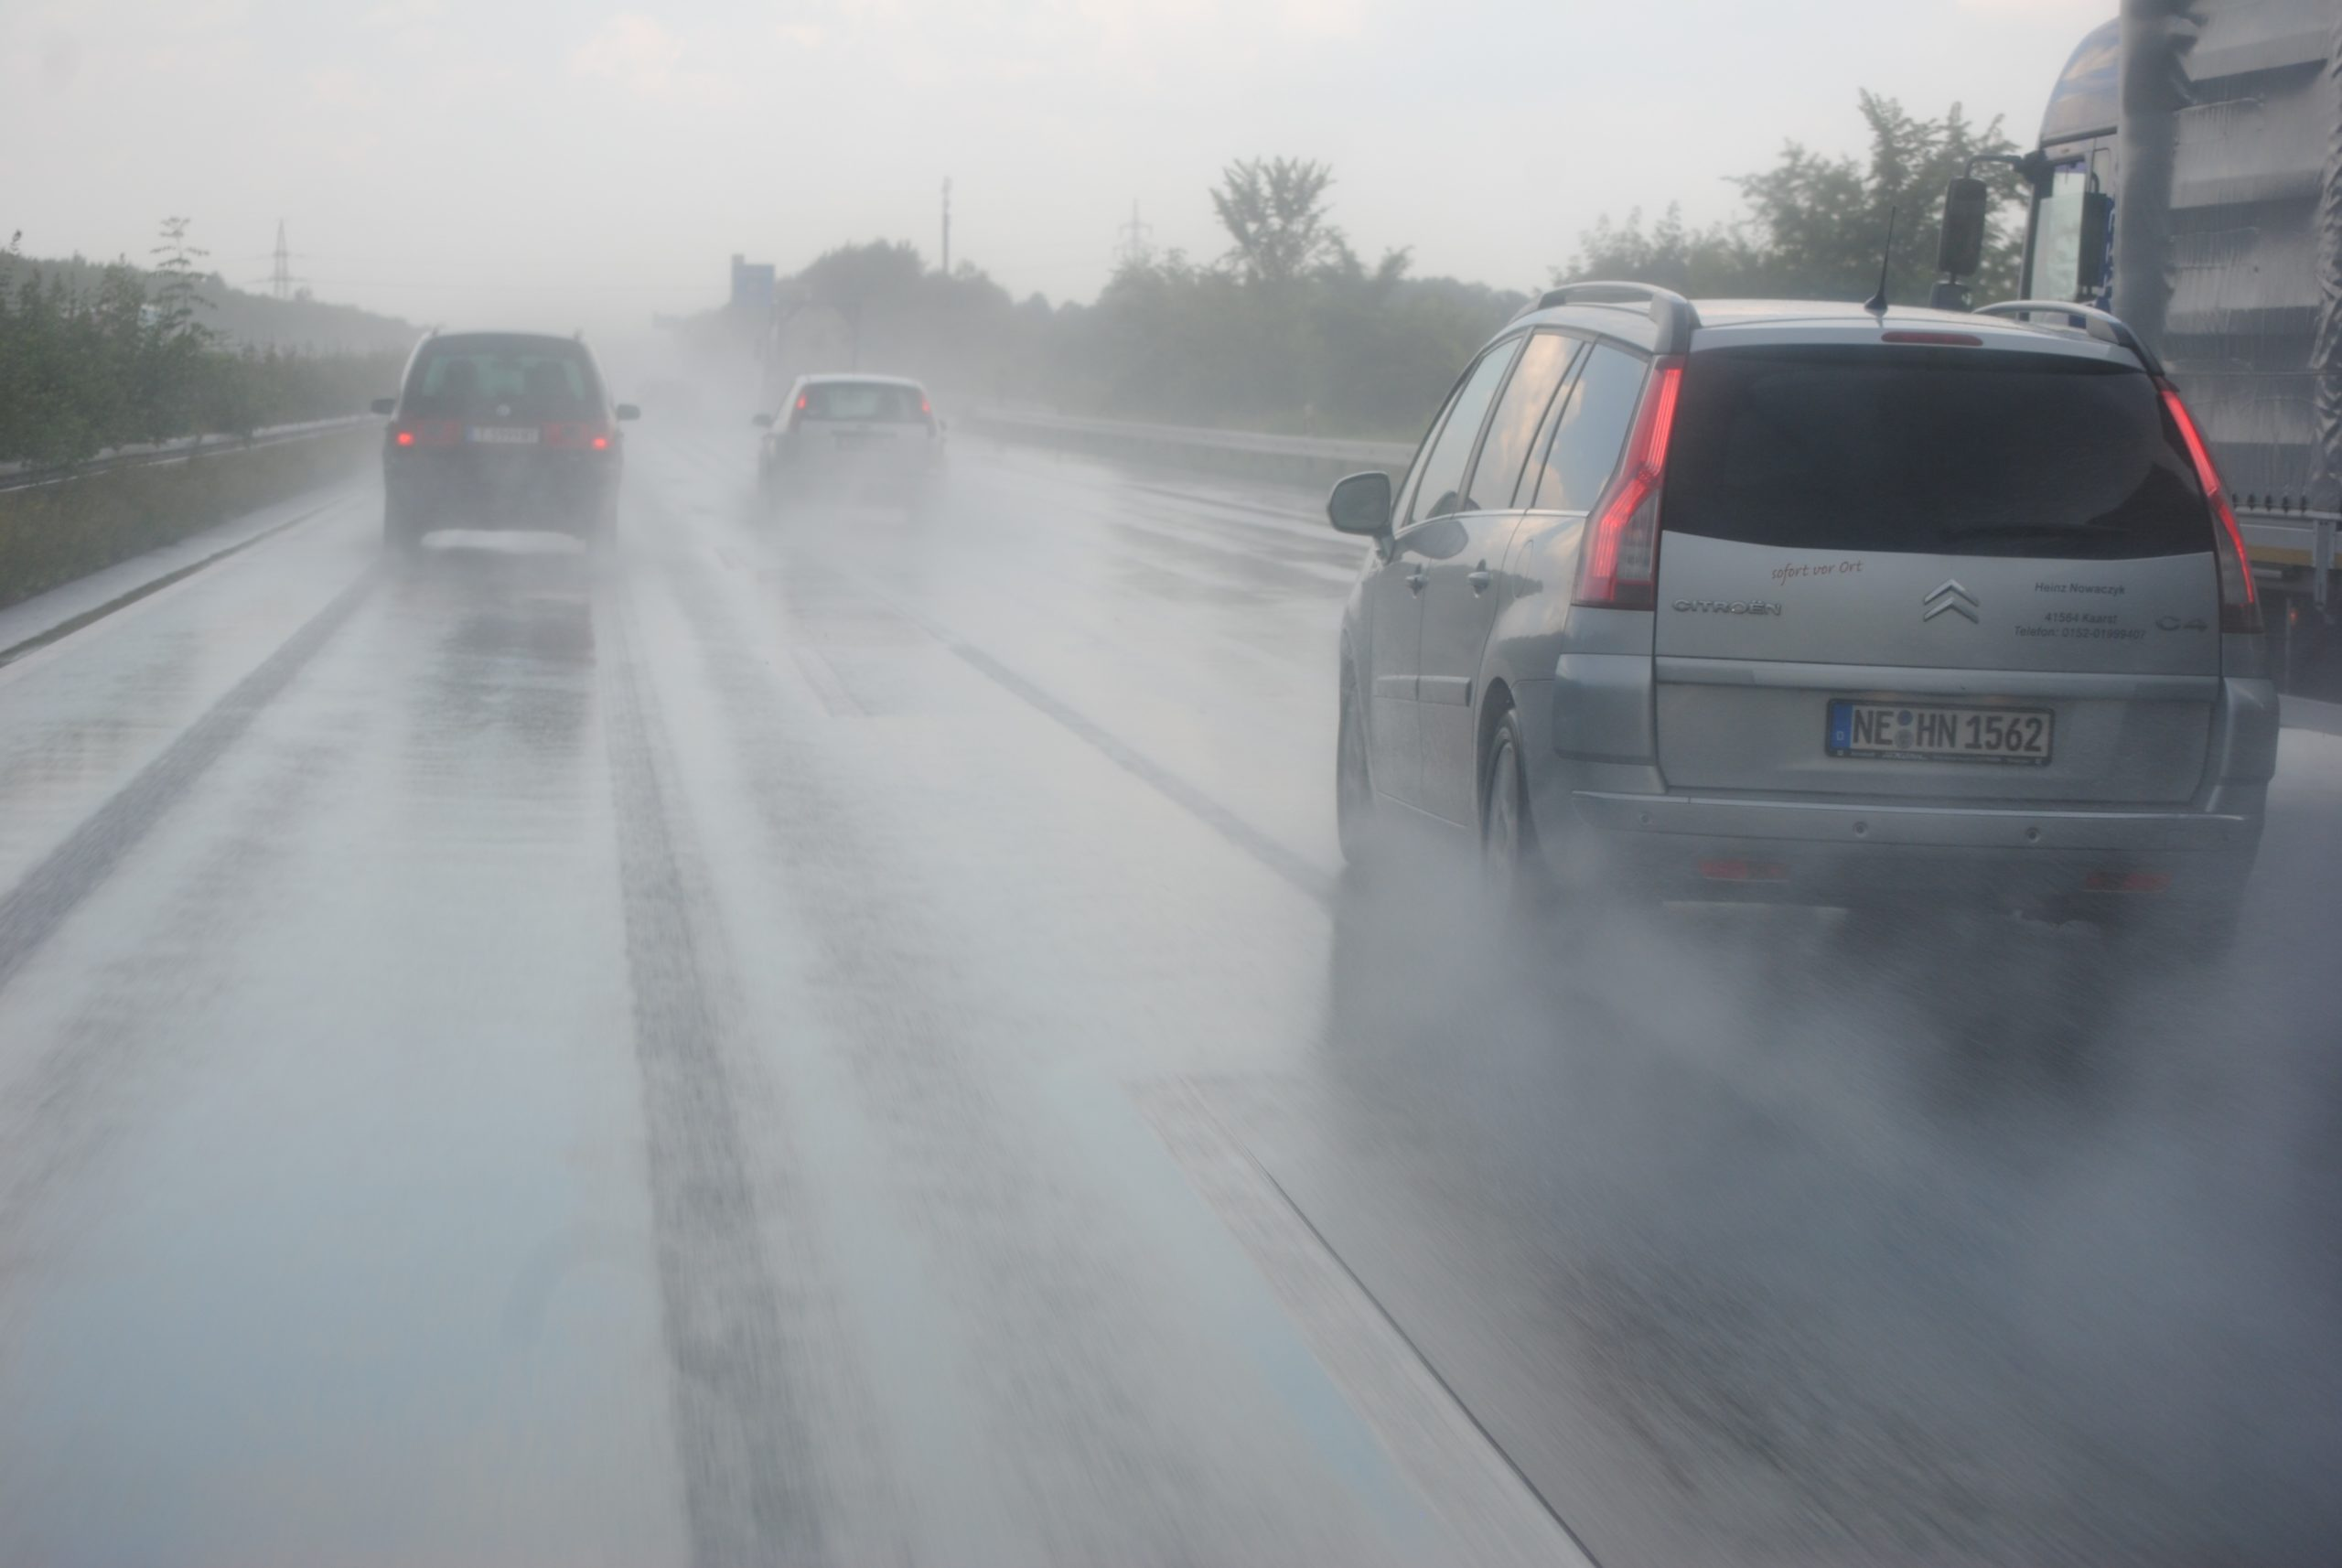 Aquaplaning and the dangers of driving in bad weather